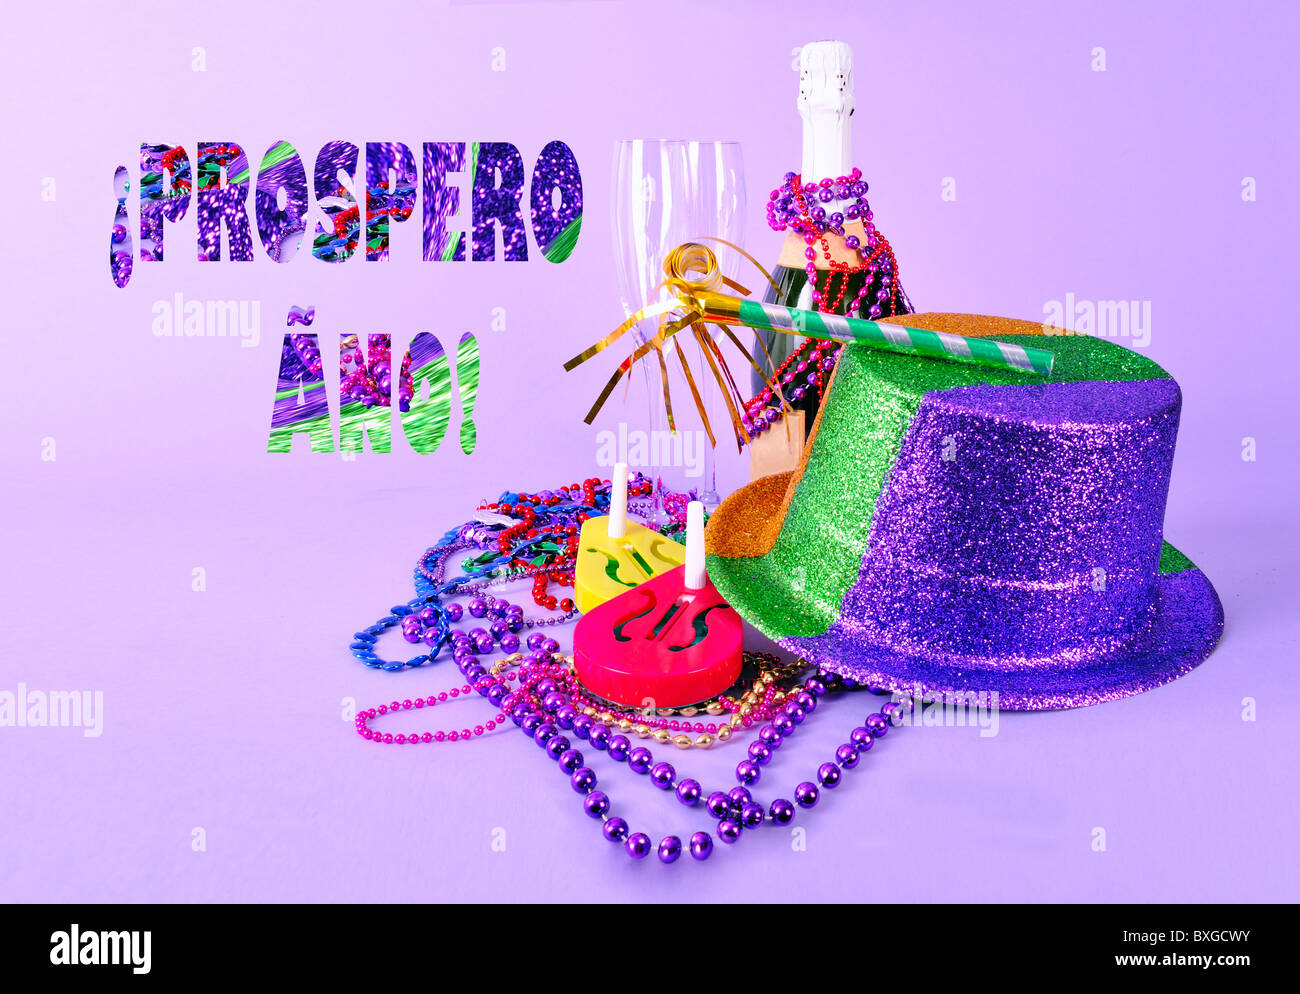 spanish holiday card or party invitation prospero ano happy new year 2011 still life champagne bottle flutes noisemakers beads